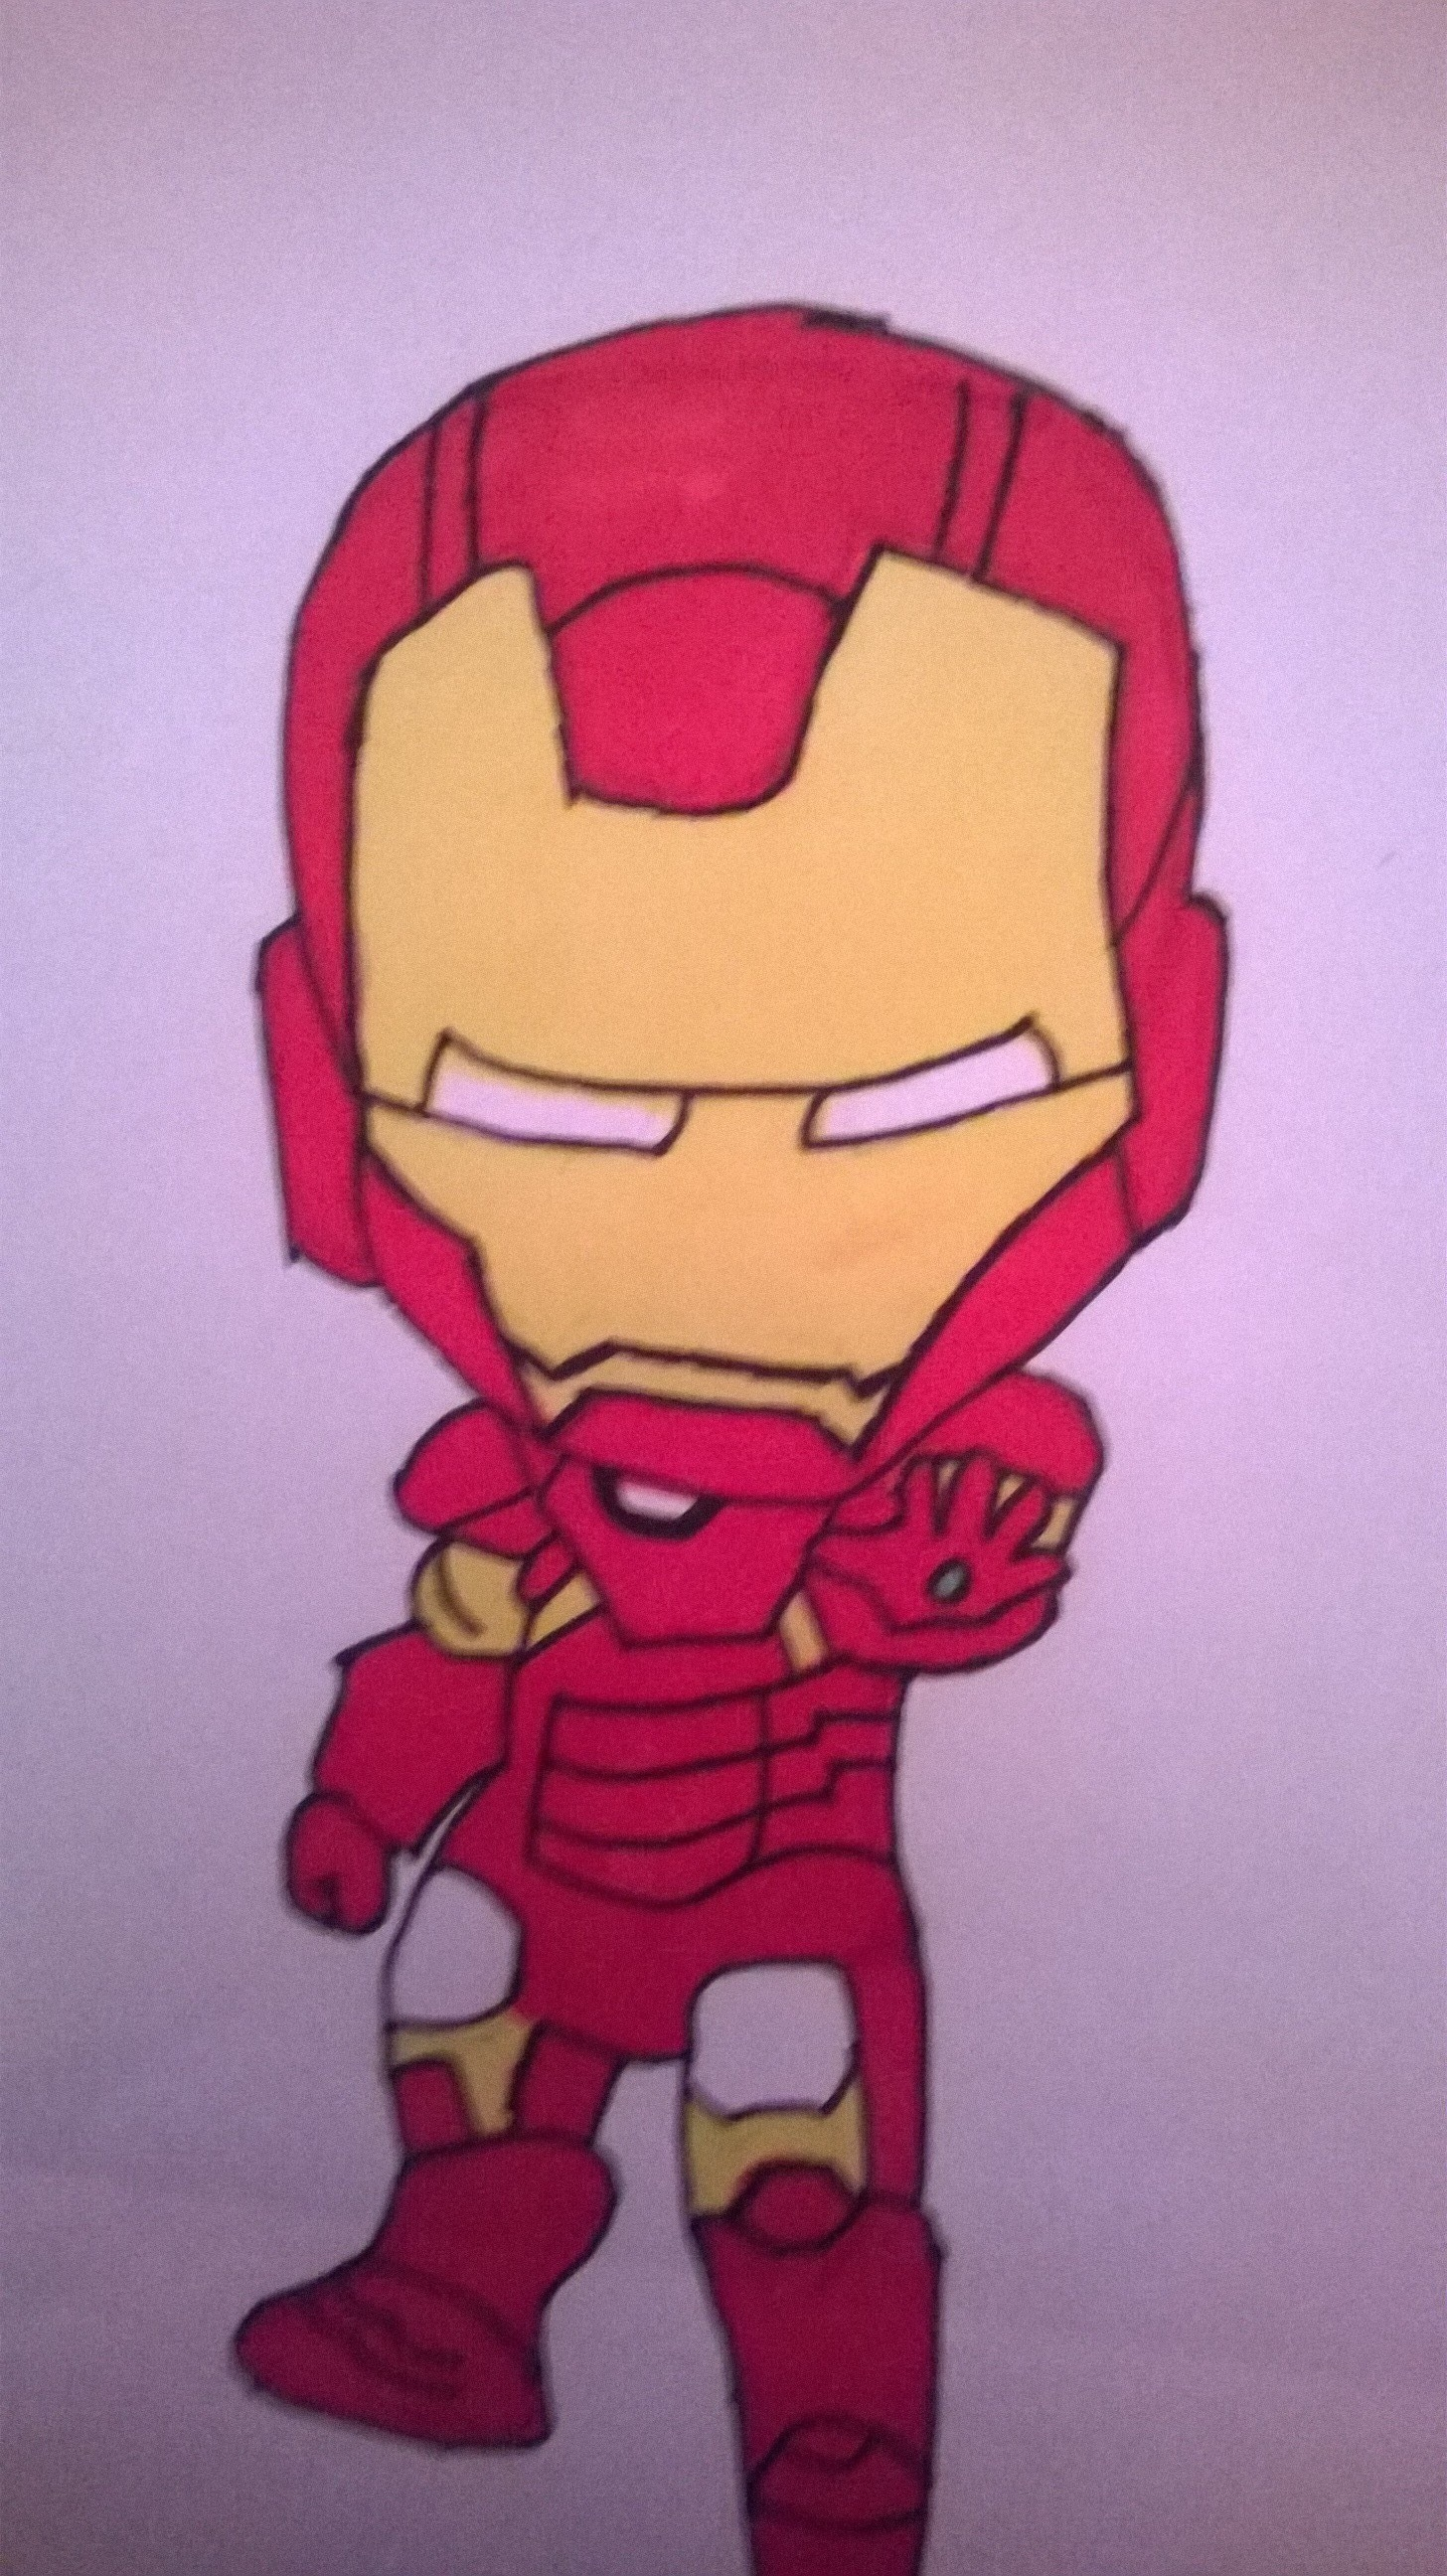 Easy Iron 25 Mg: Iron Man Drawing · How To Make A Misc · Art On Cut Out